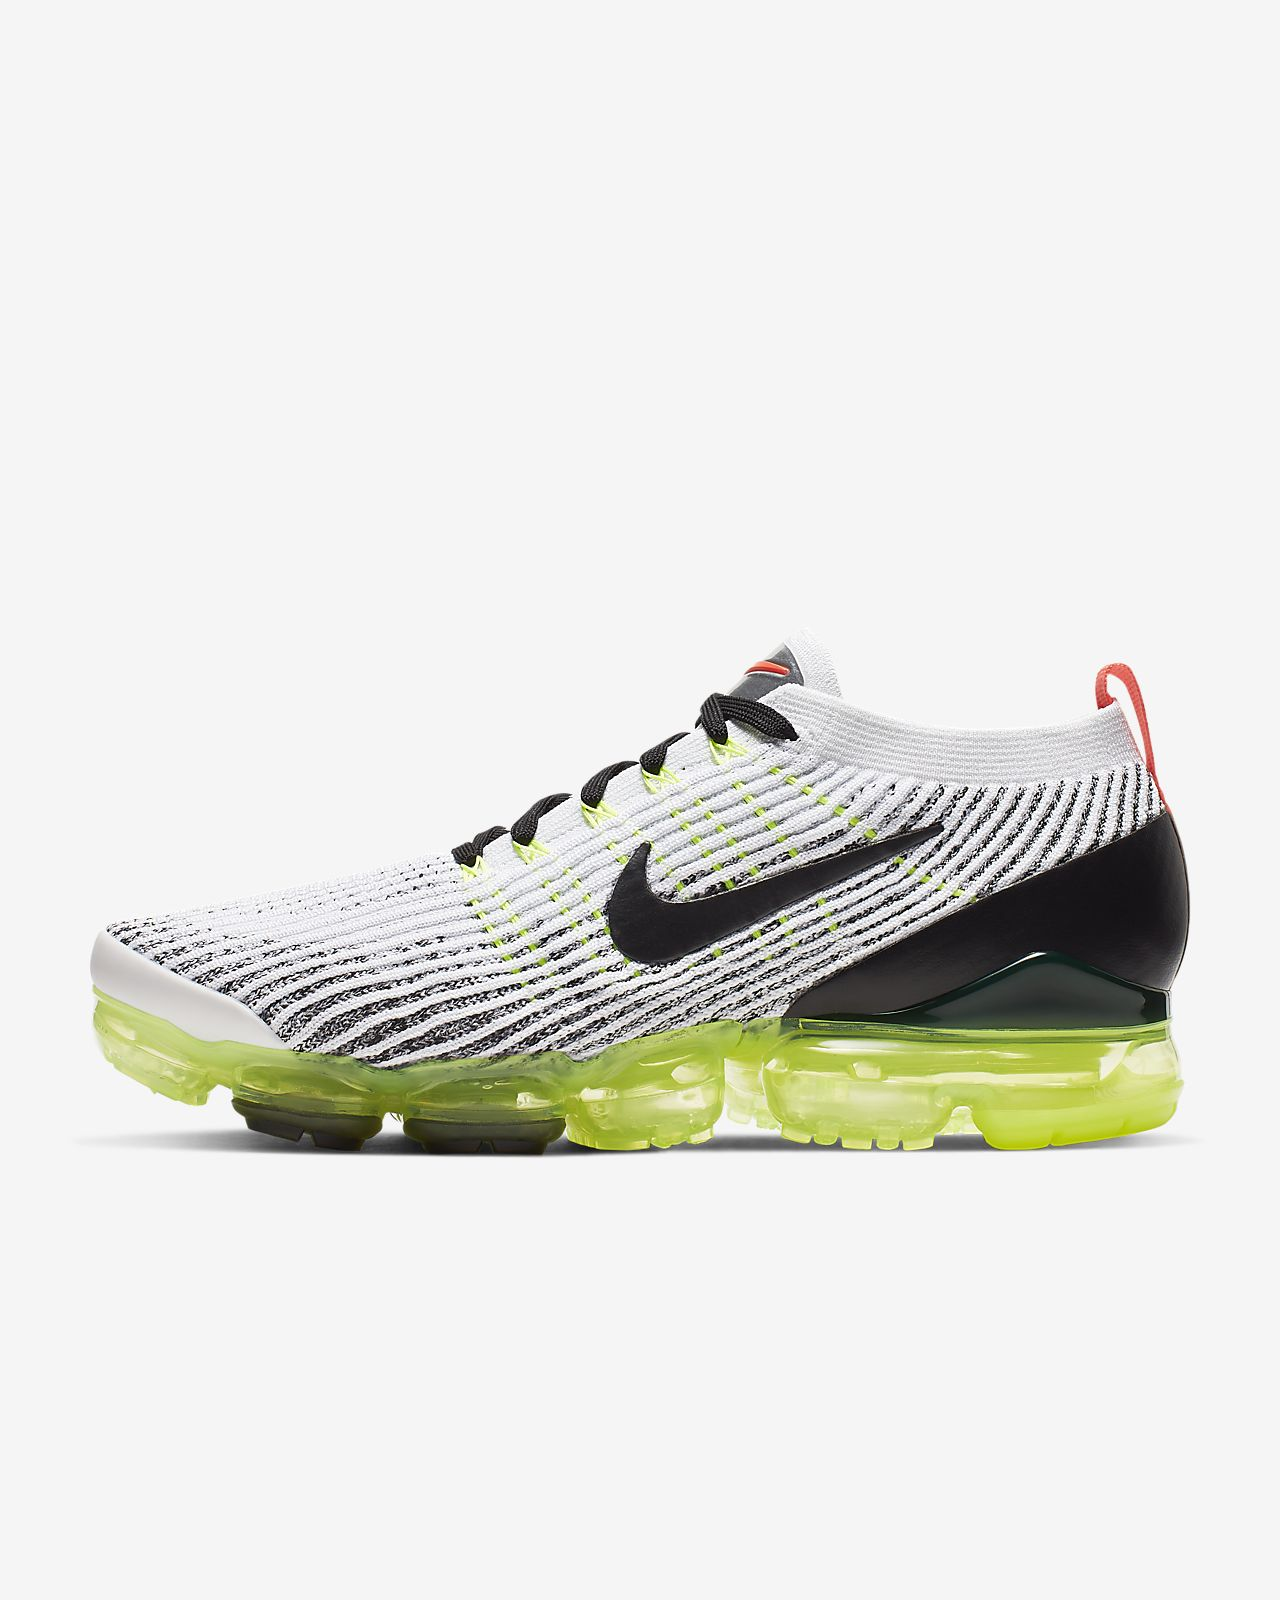 buy online 6b2d3 25f86 ... Chaussure Nike Air VaporMax Flyknit 3 pour Homme